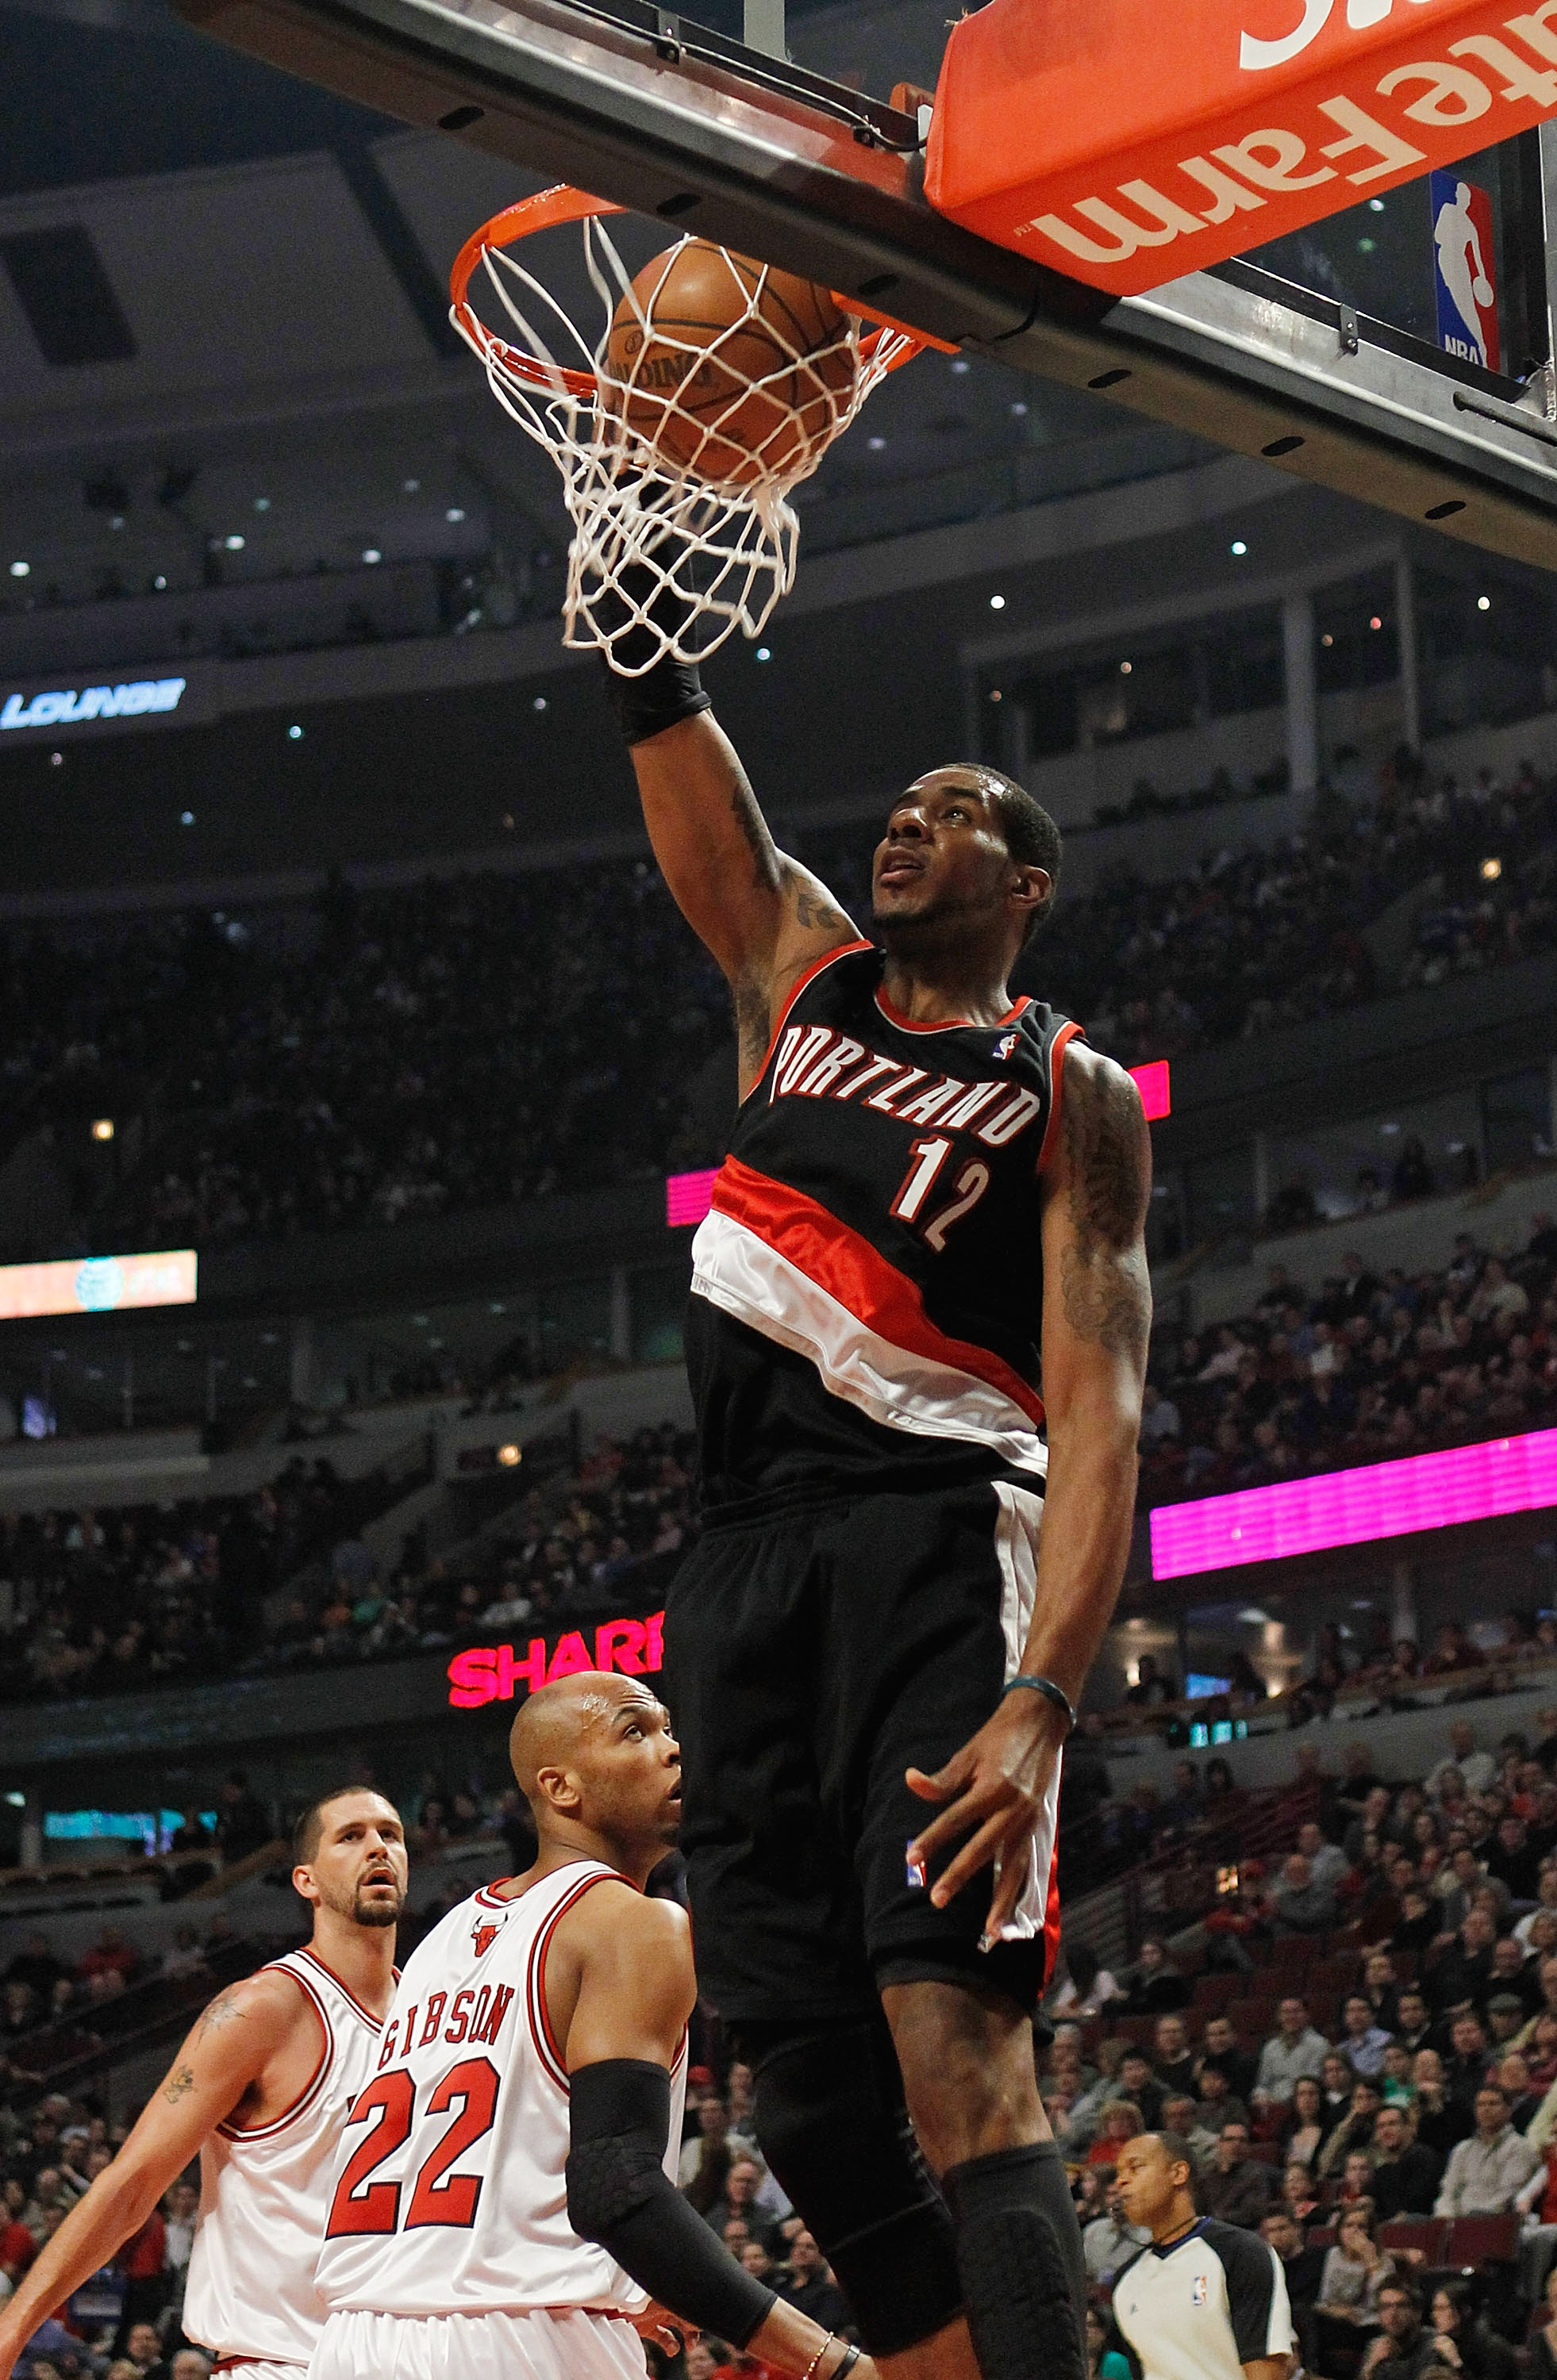 CHICAGO - FEBRUARY 26: LaMarcus Aldridge #12 of the Portland Trail Blazers dunks the ball against the Chicago Bulls at the United Center on February 26, 2010 in Chicago, Illinois. NOTE TO USER: User expressly acknowledges and agrees that, by downloading a